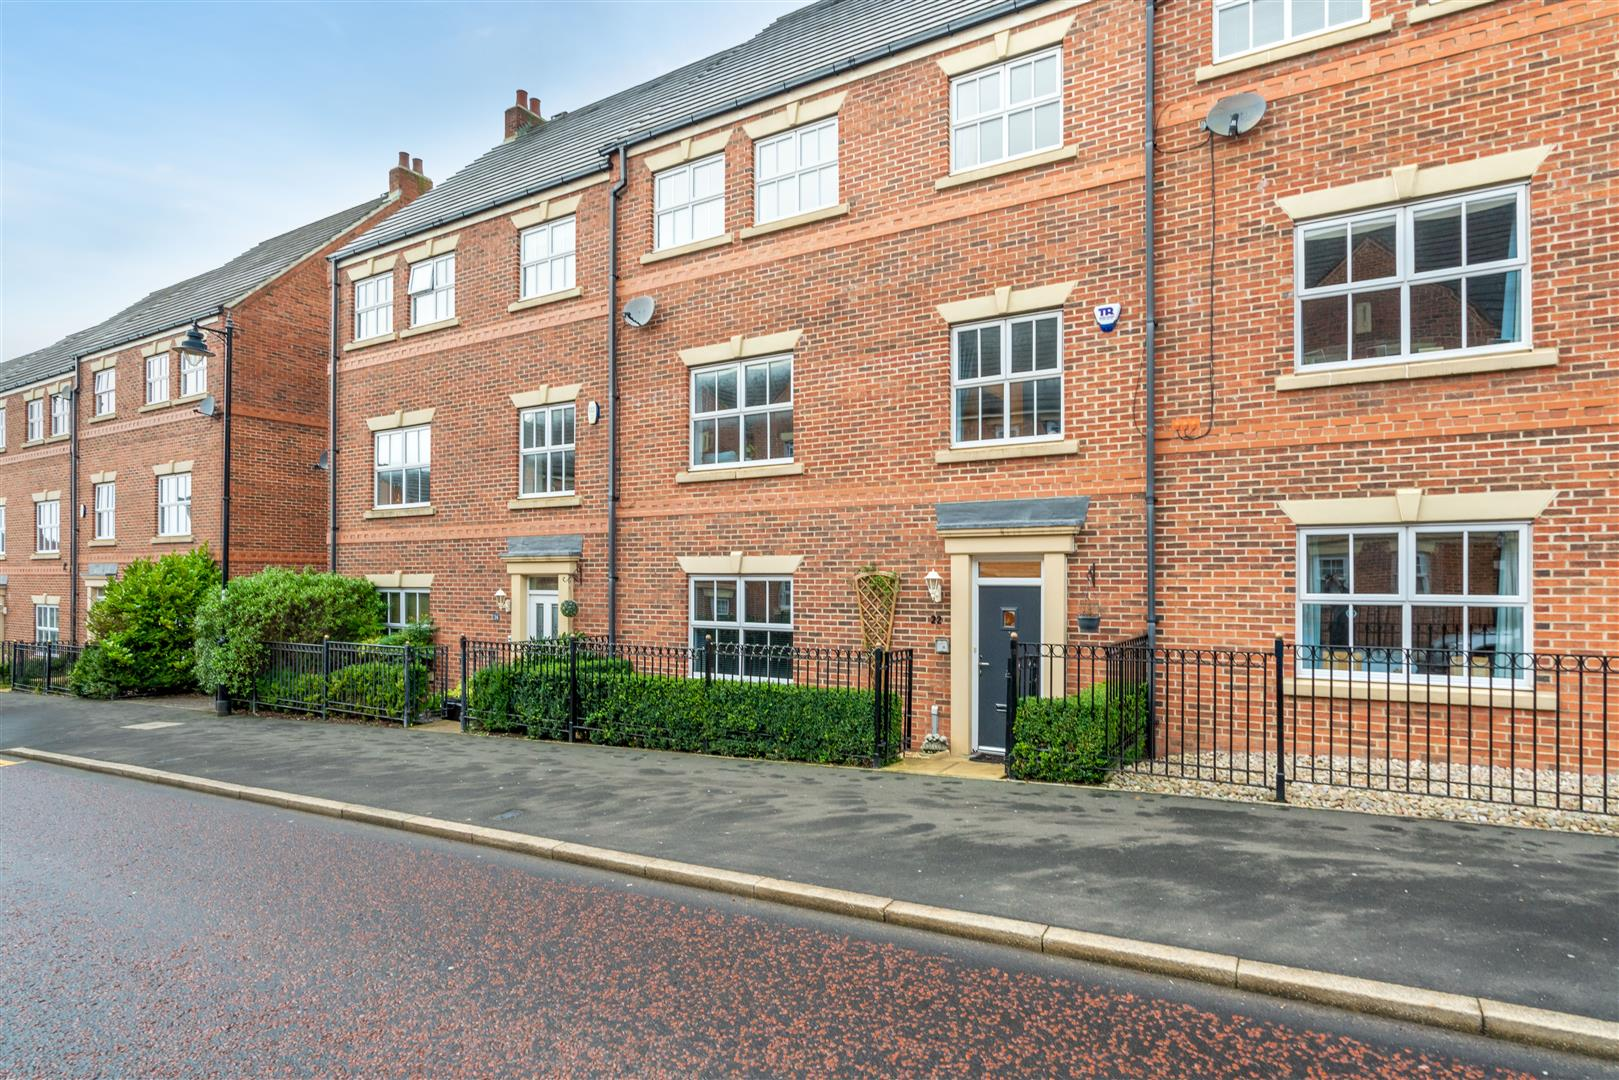 5 bed terraced house for sale in Newcastle Upon Tyne, NE3 5RJ, NE3